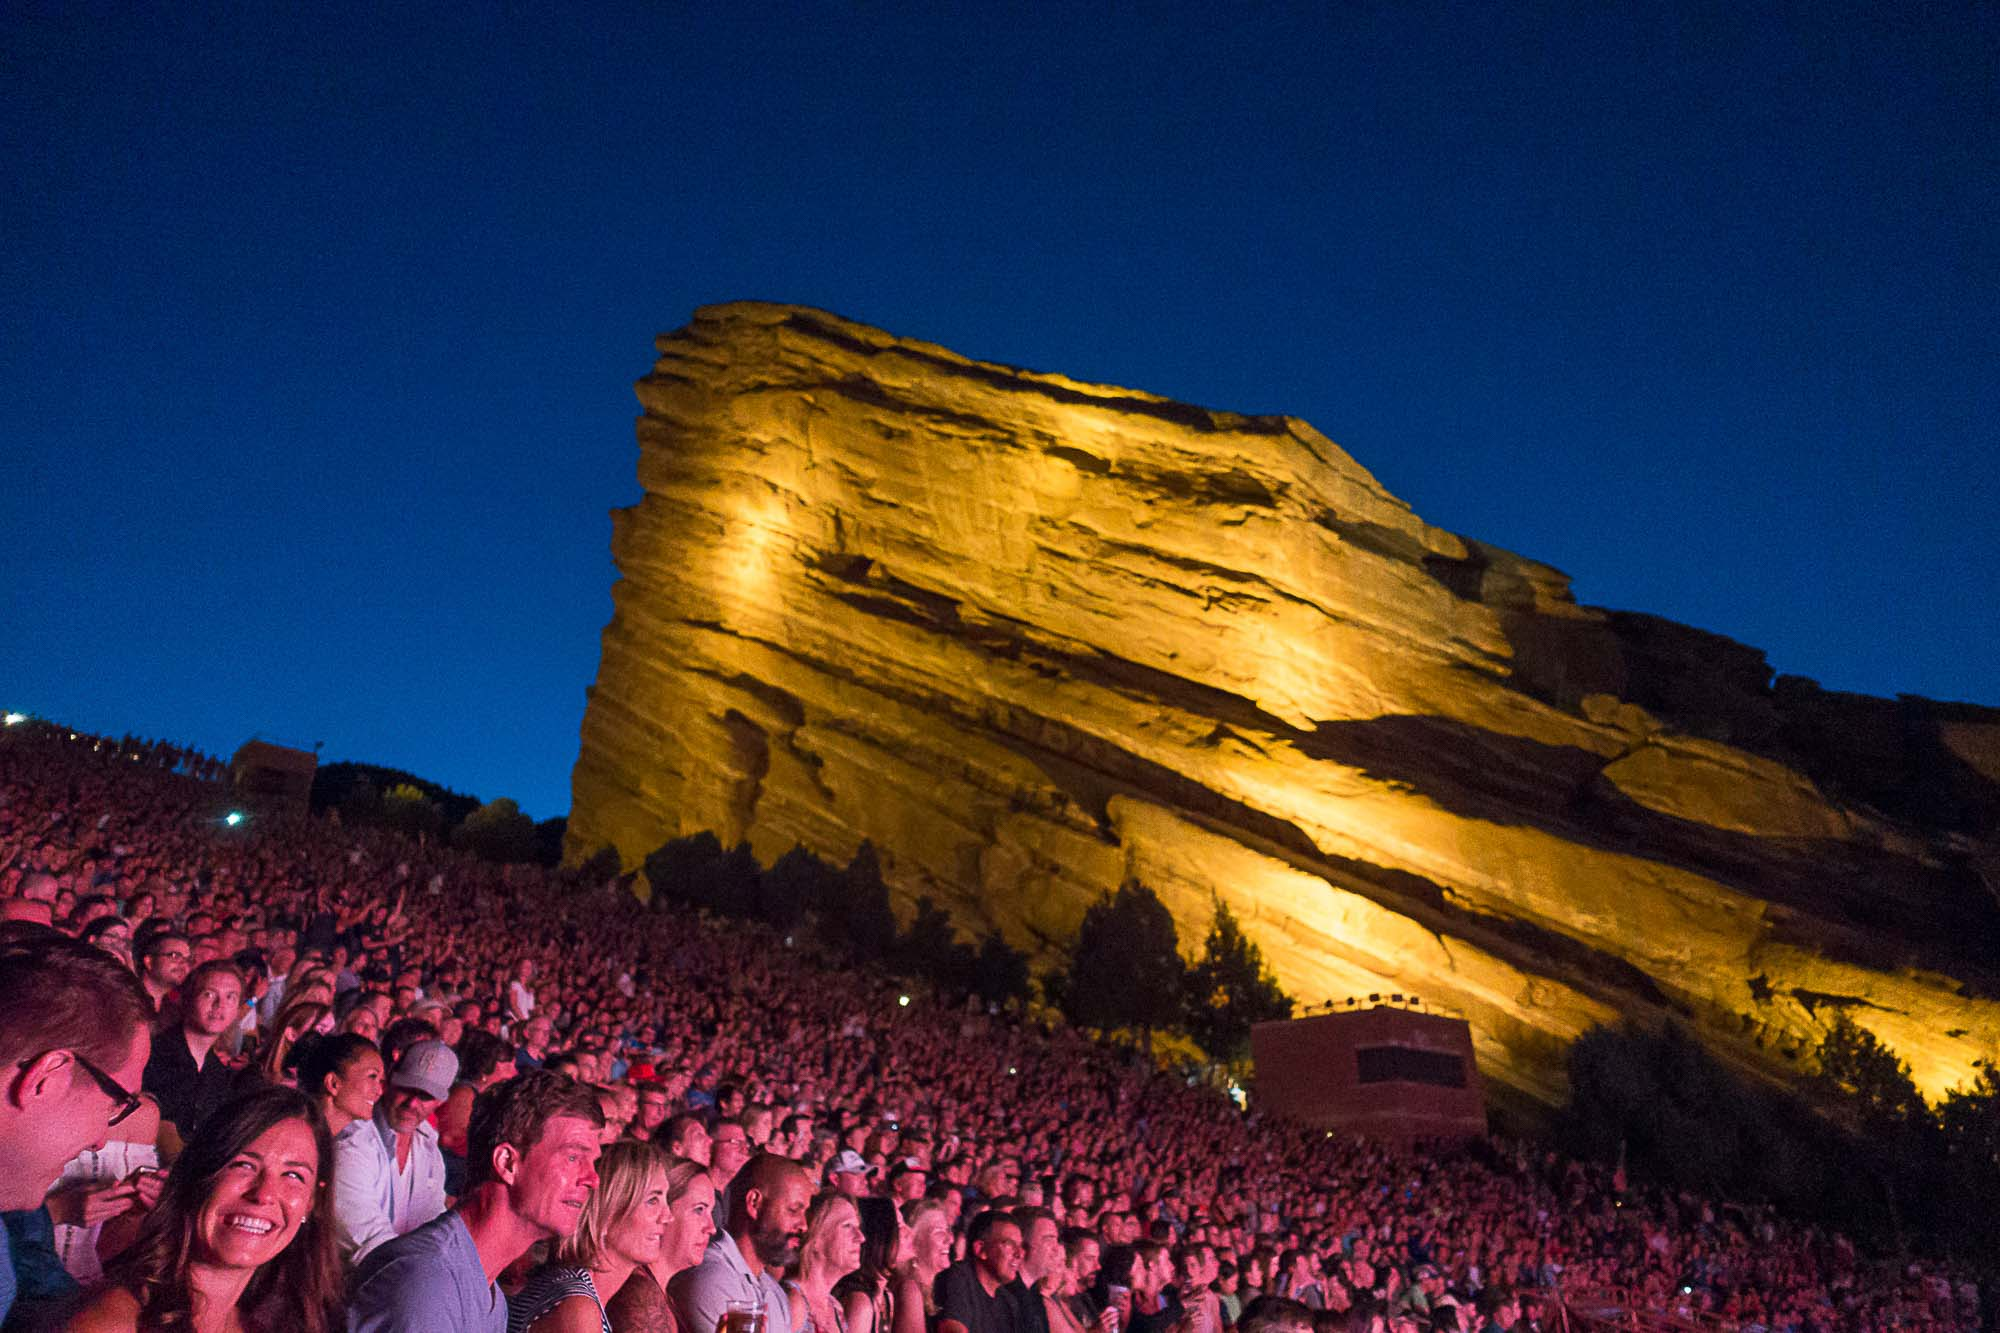 Crowd watches a show at night at Red Rocks.